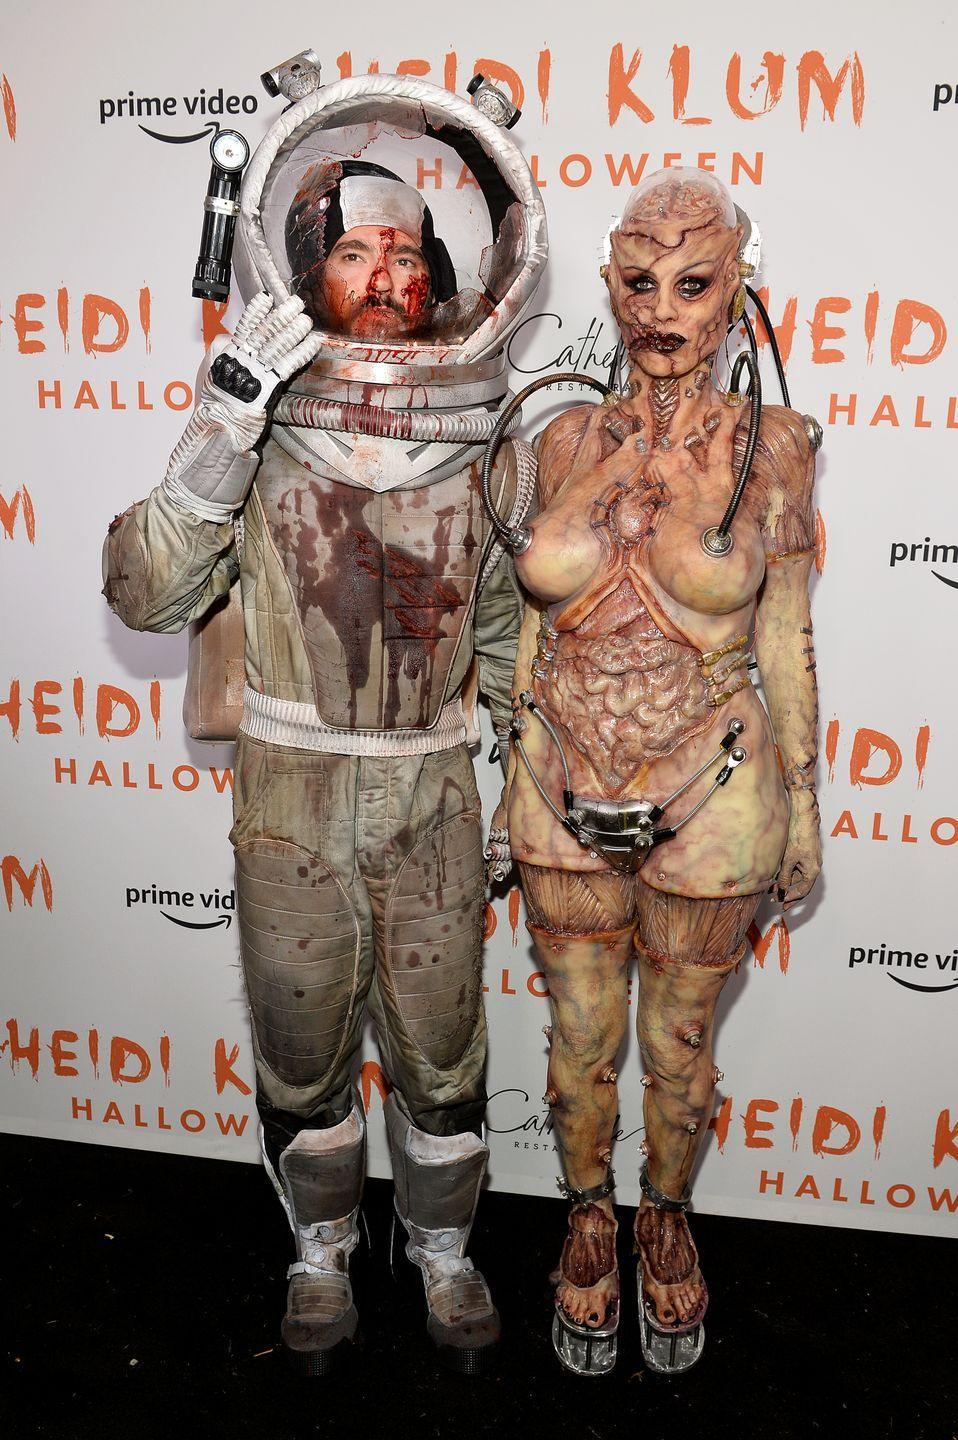 <p>Wow. Talk about going all out! The Halloween Queen Heidi Klum and her husband Tom Kaulitz dressed as a mega-gory alien and astronaut in 2019. What will they do to bring it in 2020?</p>